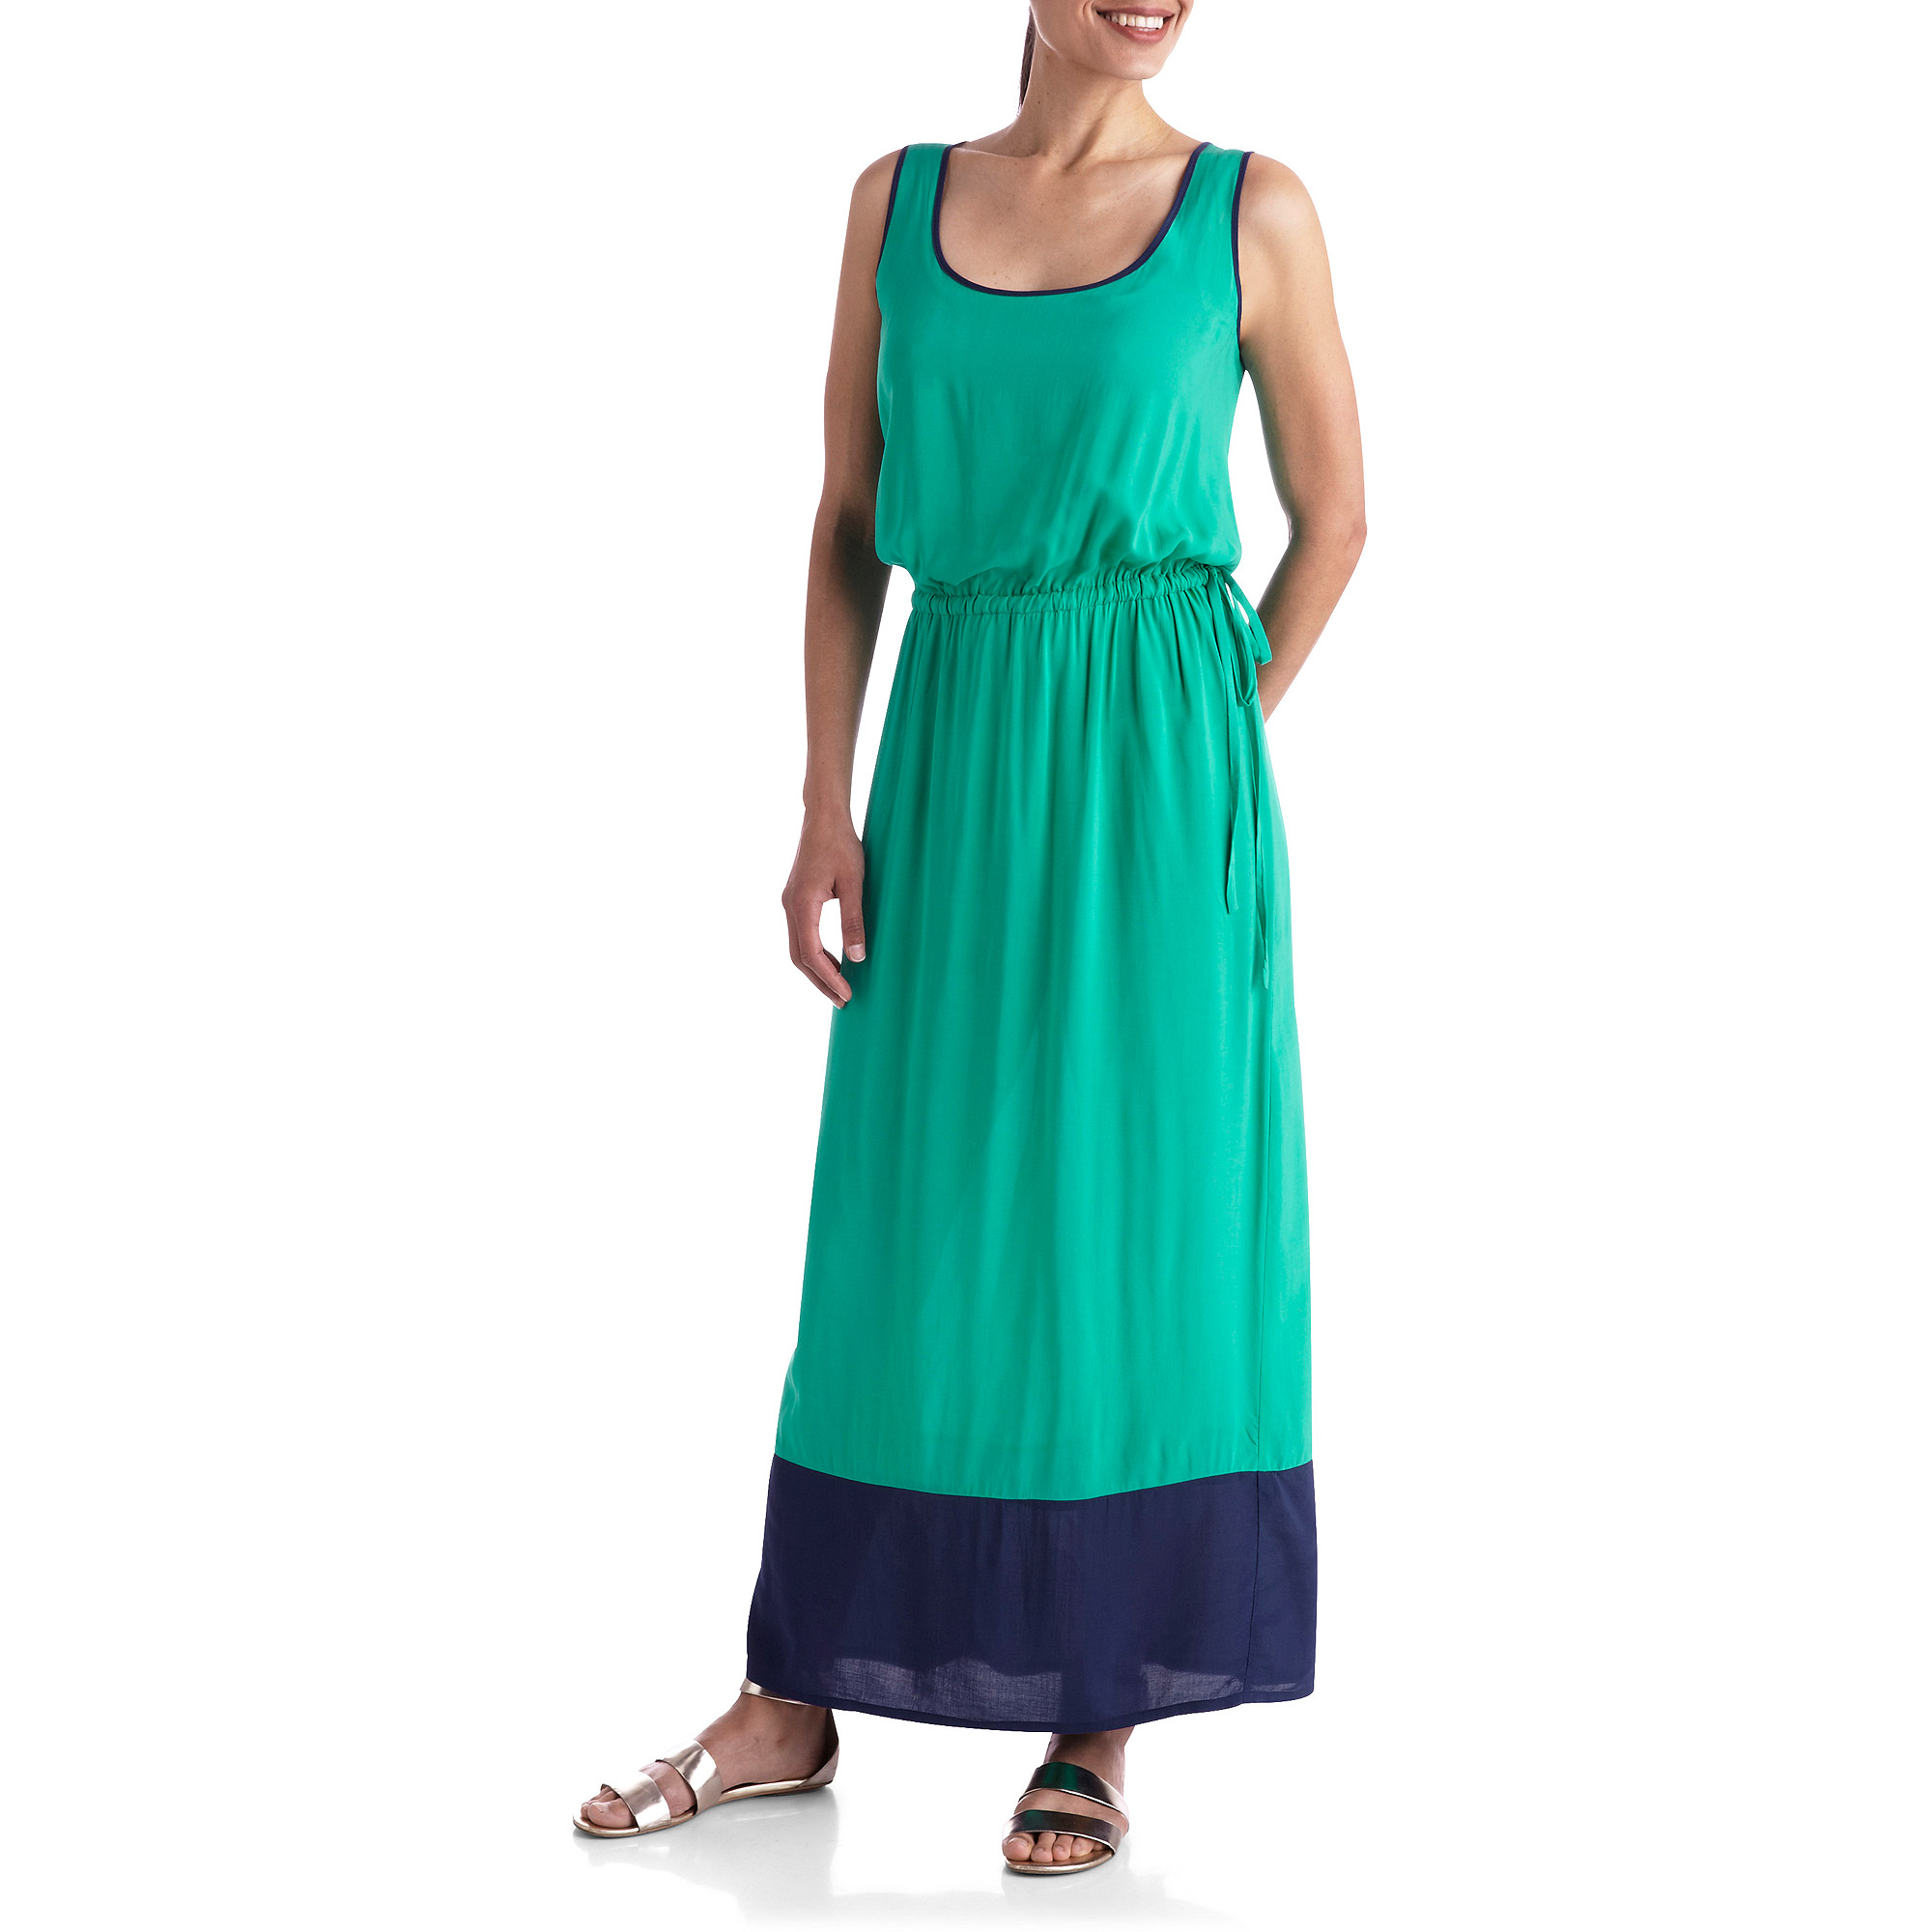 In The Mix Women's Plus-Size Maxi Dress with Ties at Waist